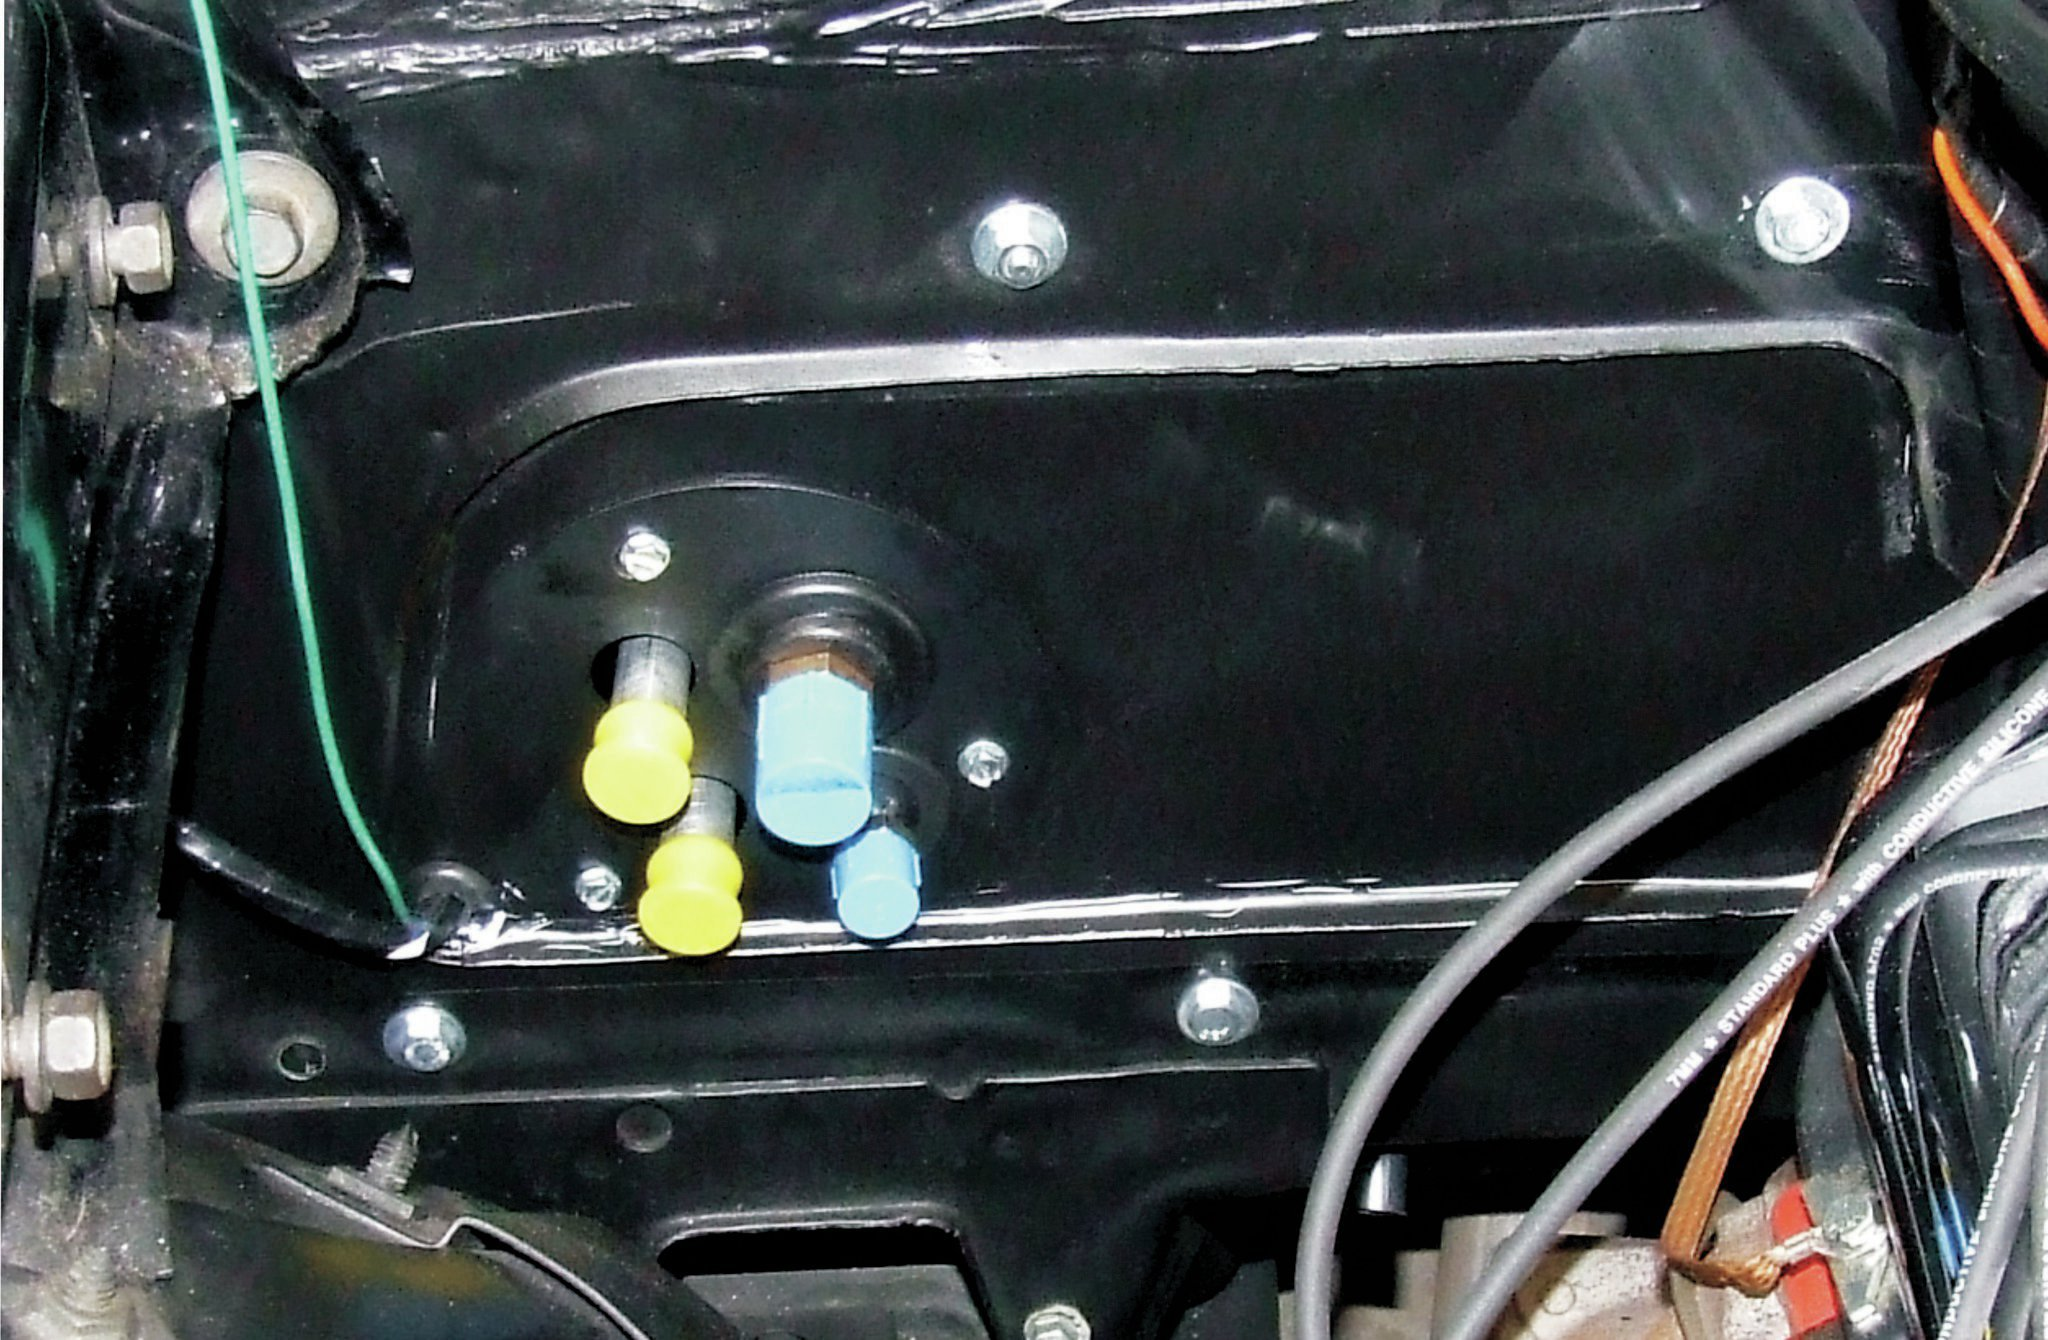 65 Mustang Heater Wiring Diagram Installing Air Conditioning In Your Muscle Car Hot Rod